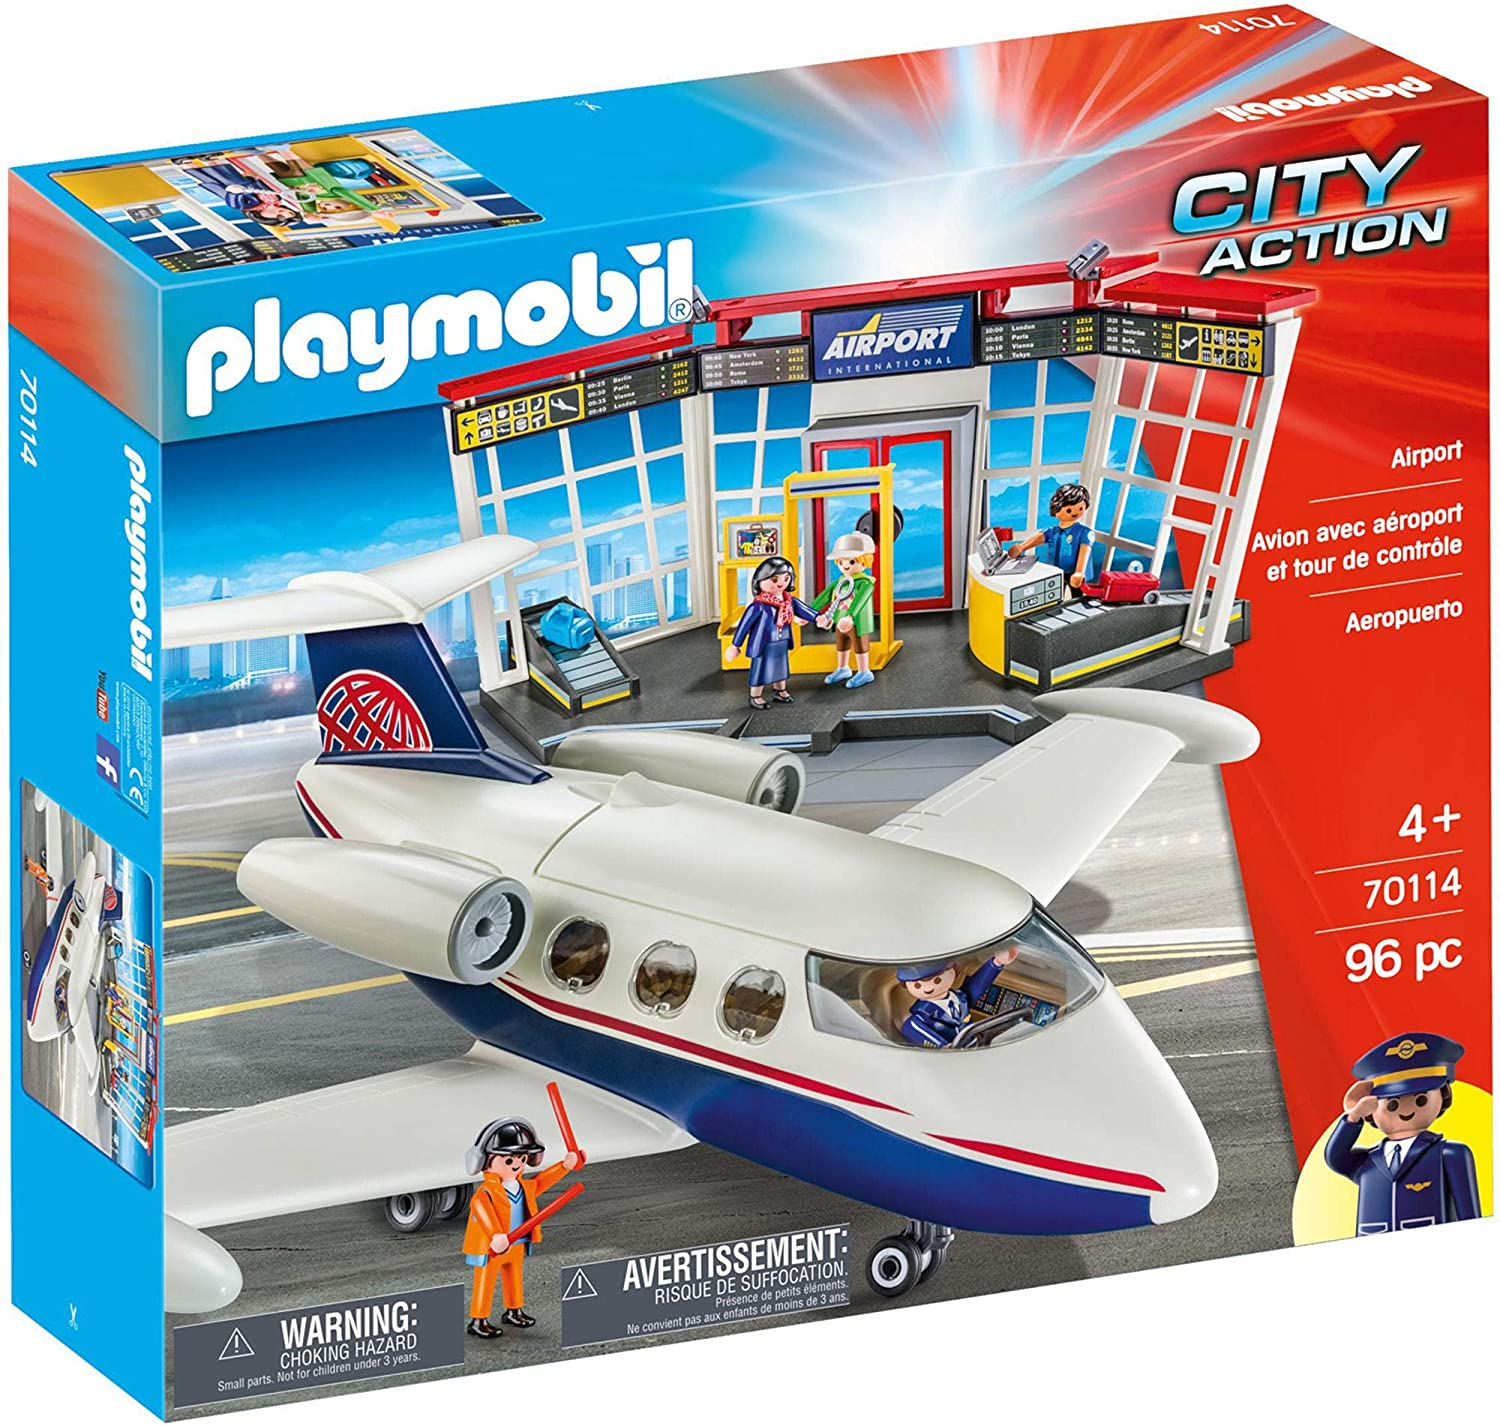 Playmobil 70114 Airport 96PC City Action Fast Delivery ...